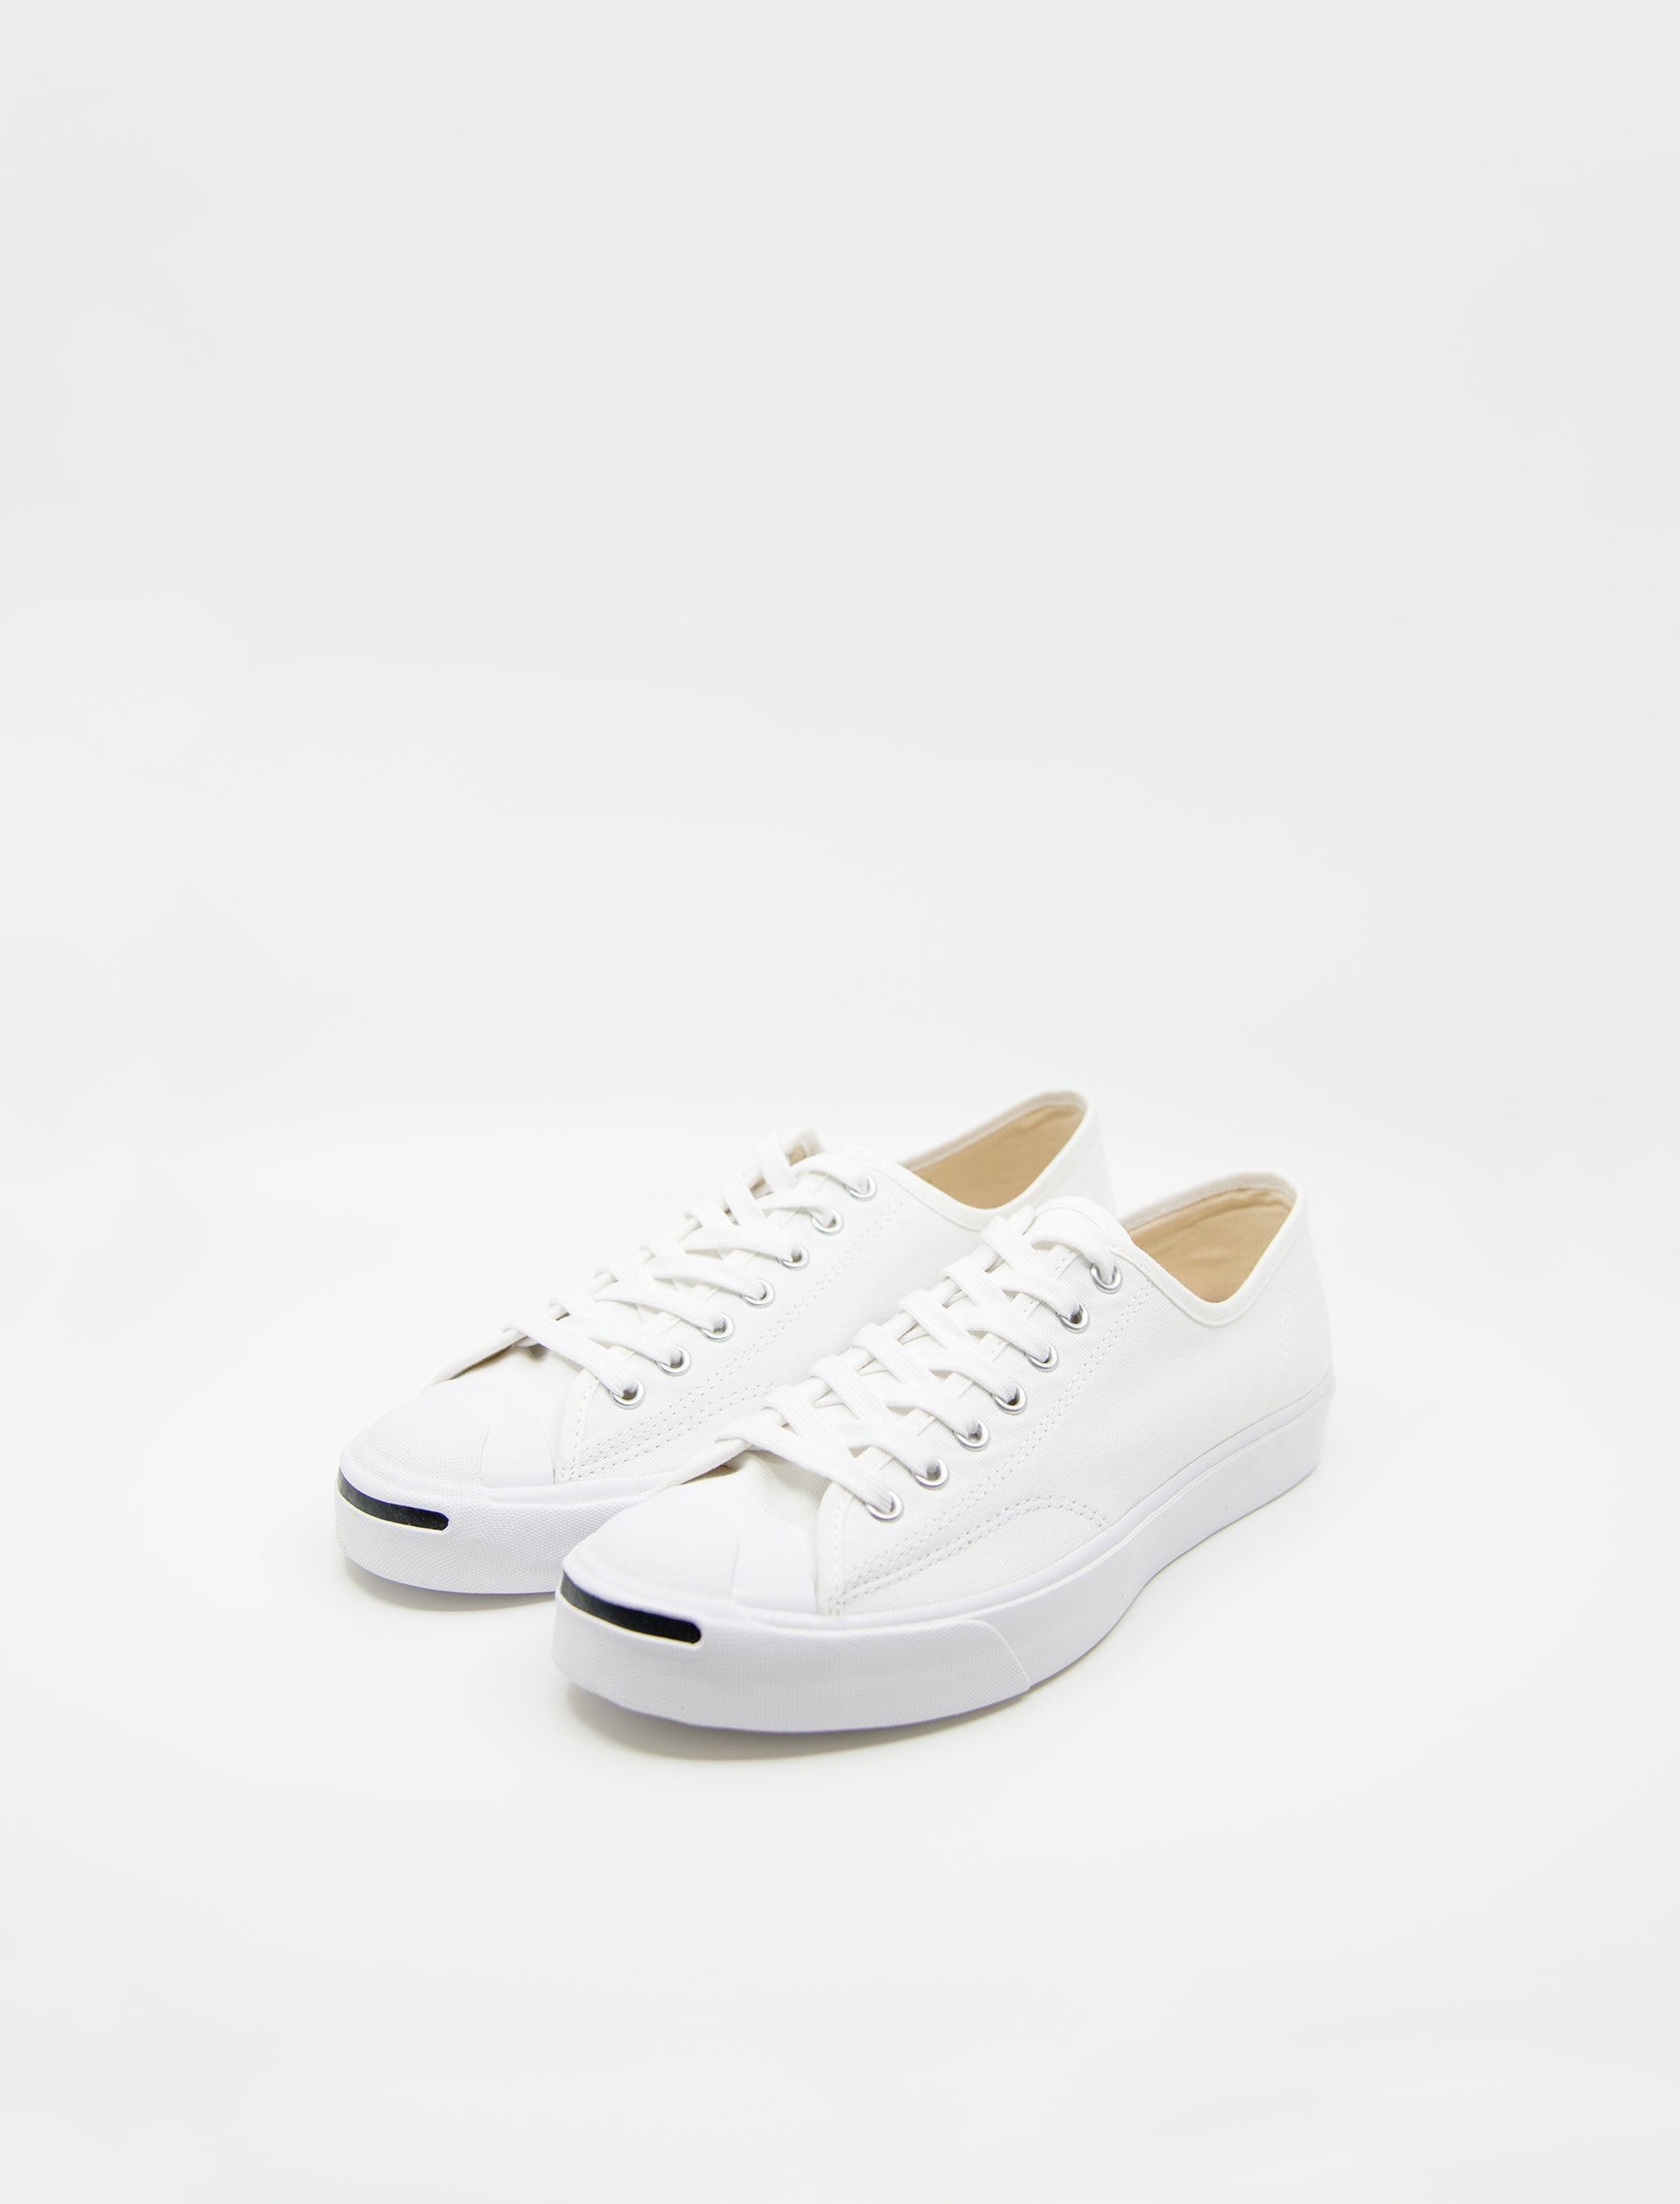 796afeeff6f9 Converse Jack Purcell OX White White - NOMAD